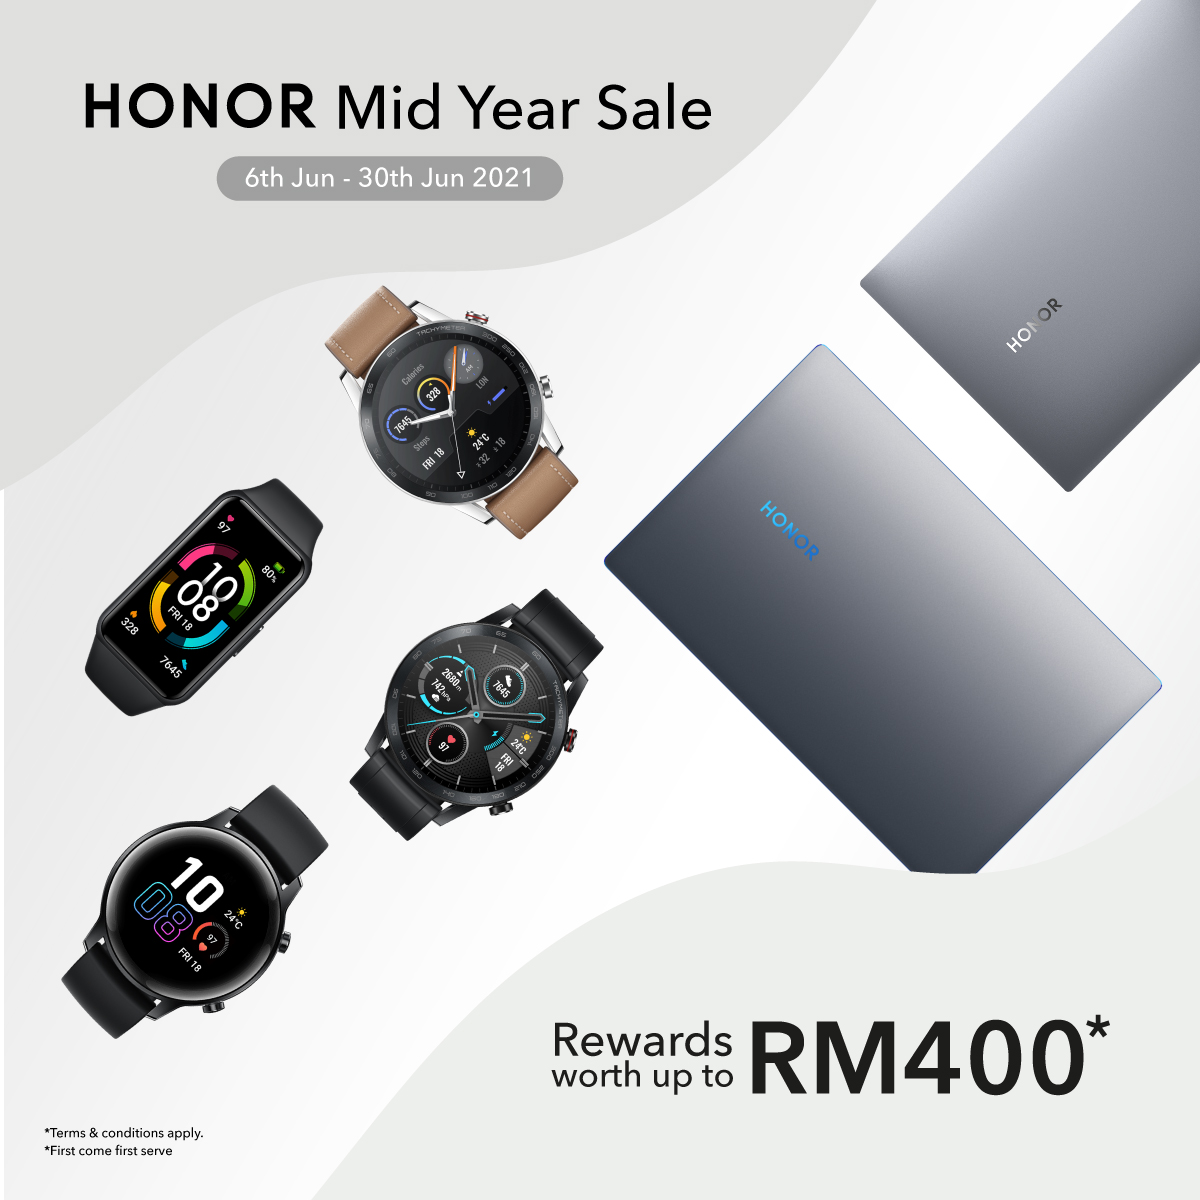 HONOR Malaysia's Mid Year Sale: Purchase products And Enjoy Rewards Worth Up To RM400 7